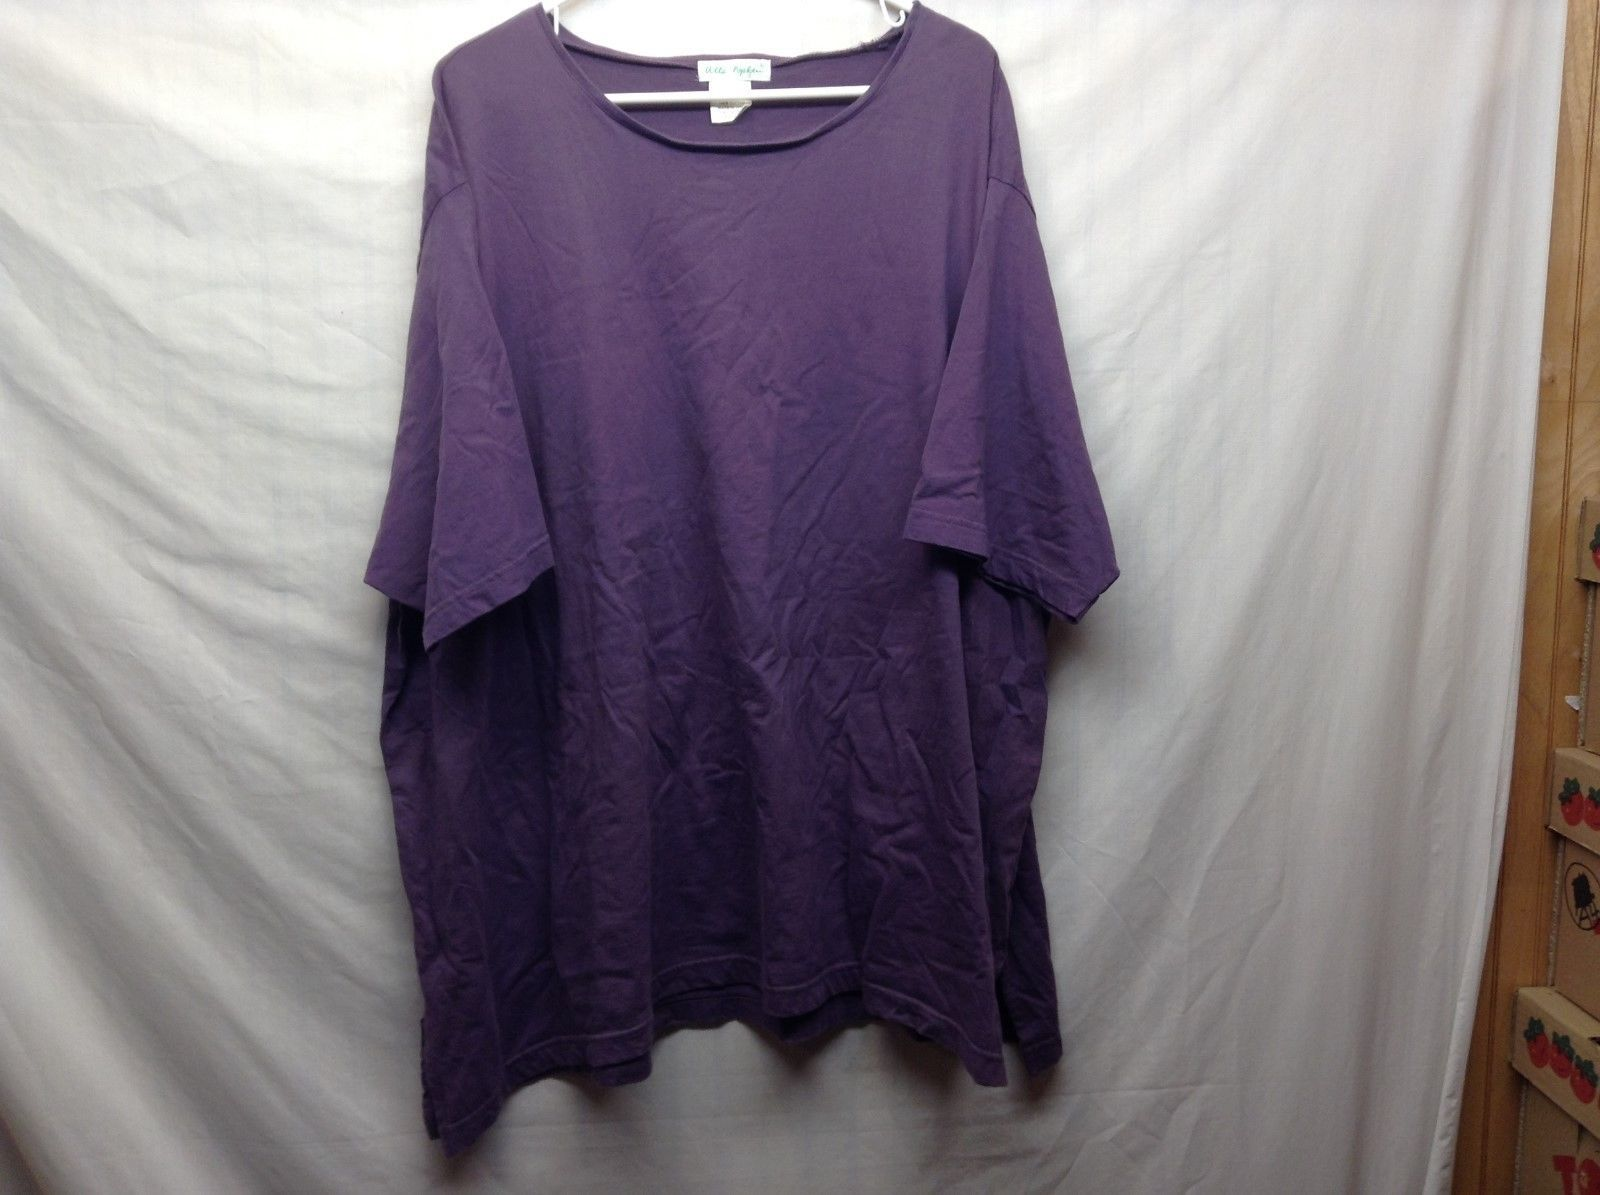 Ulla Popken Relaxed Fit Purple Shirt Sz 28/30